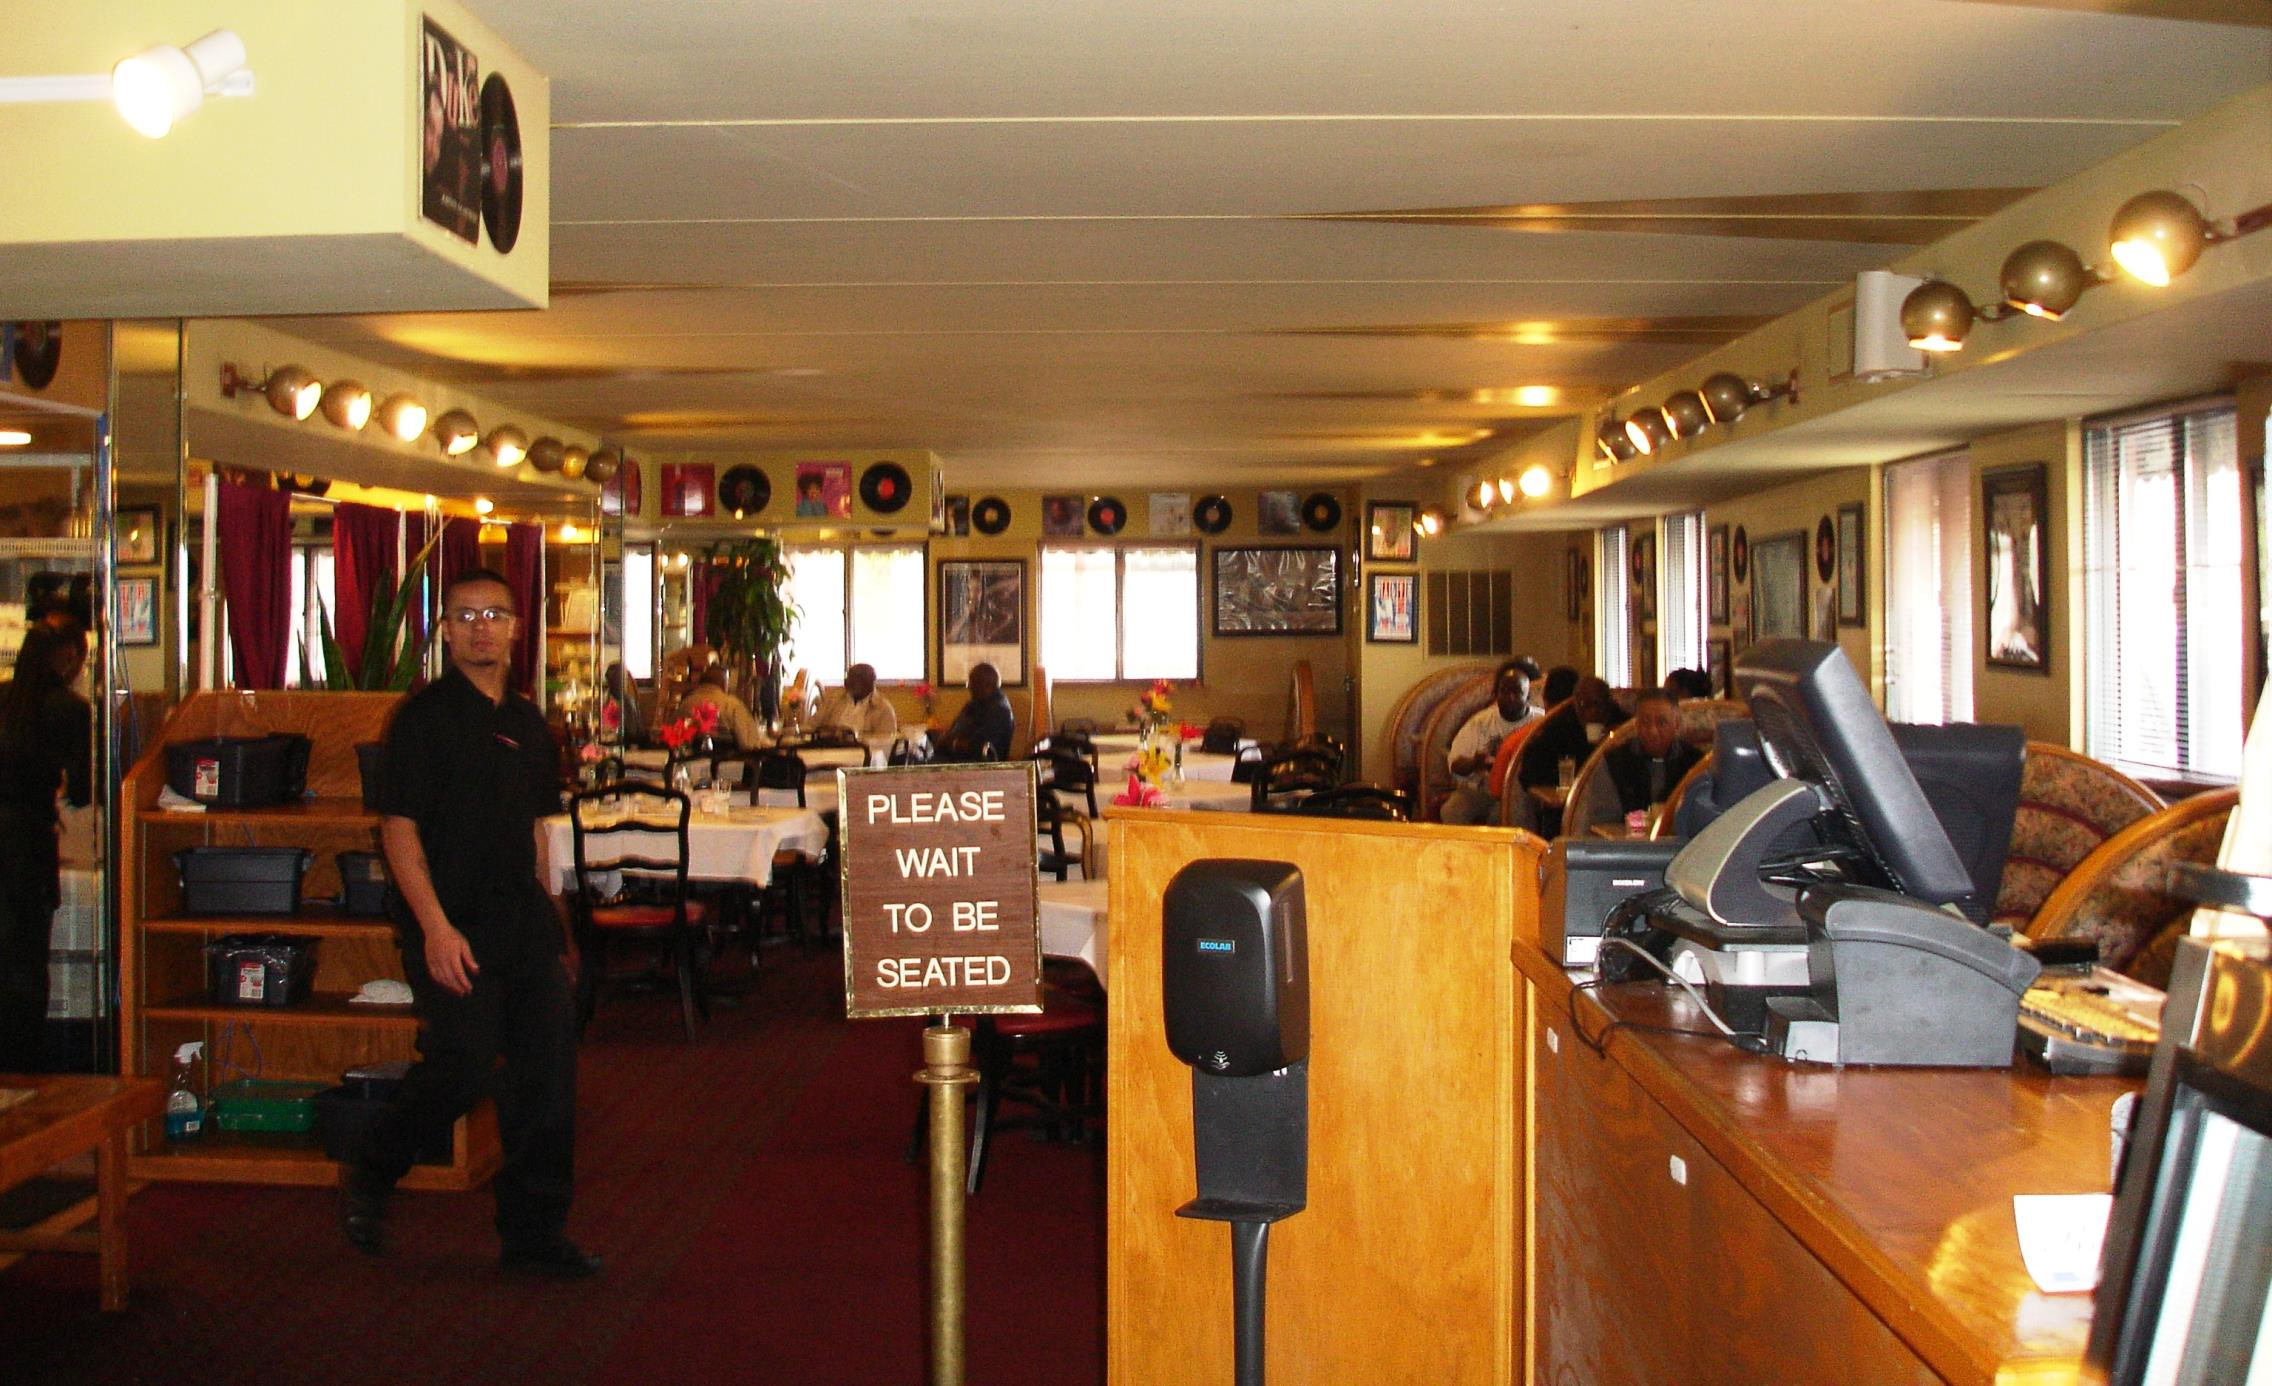 Jazz and soul classics from the '60s, on vinyl, are stuck all over the walls at Pearl's.